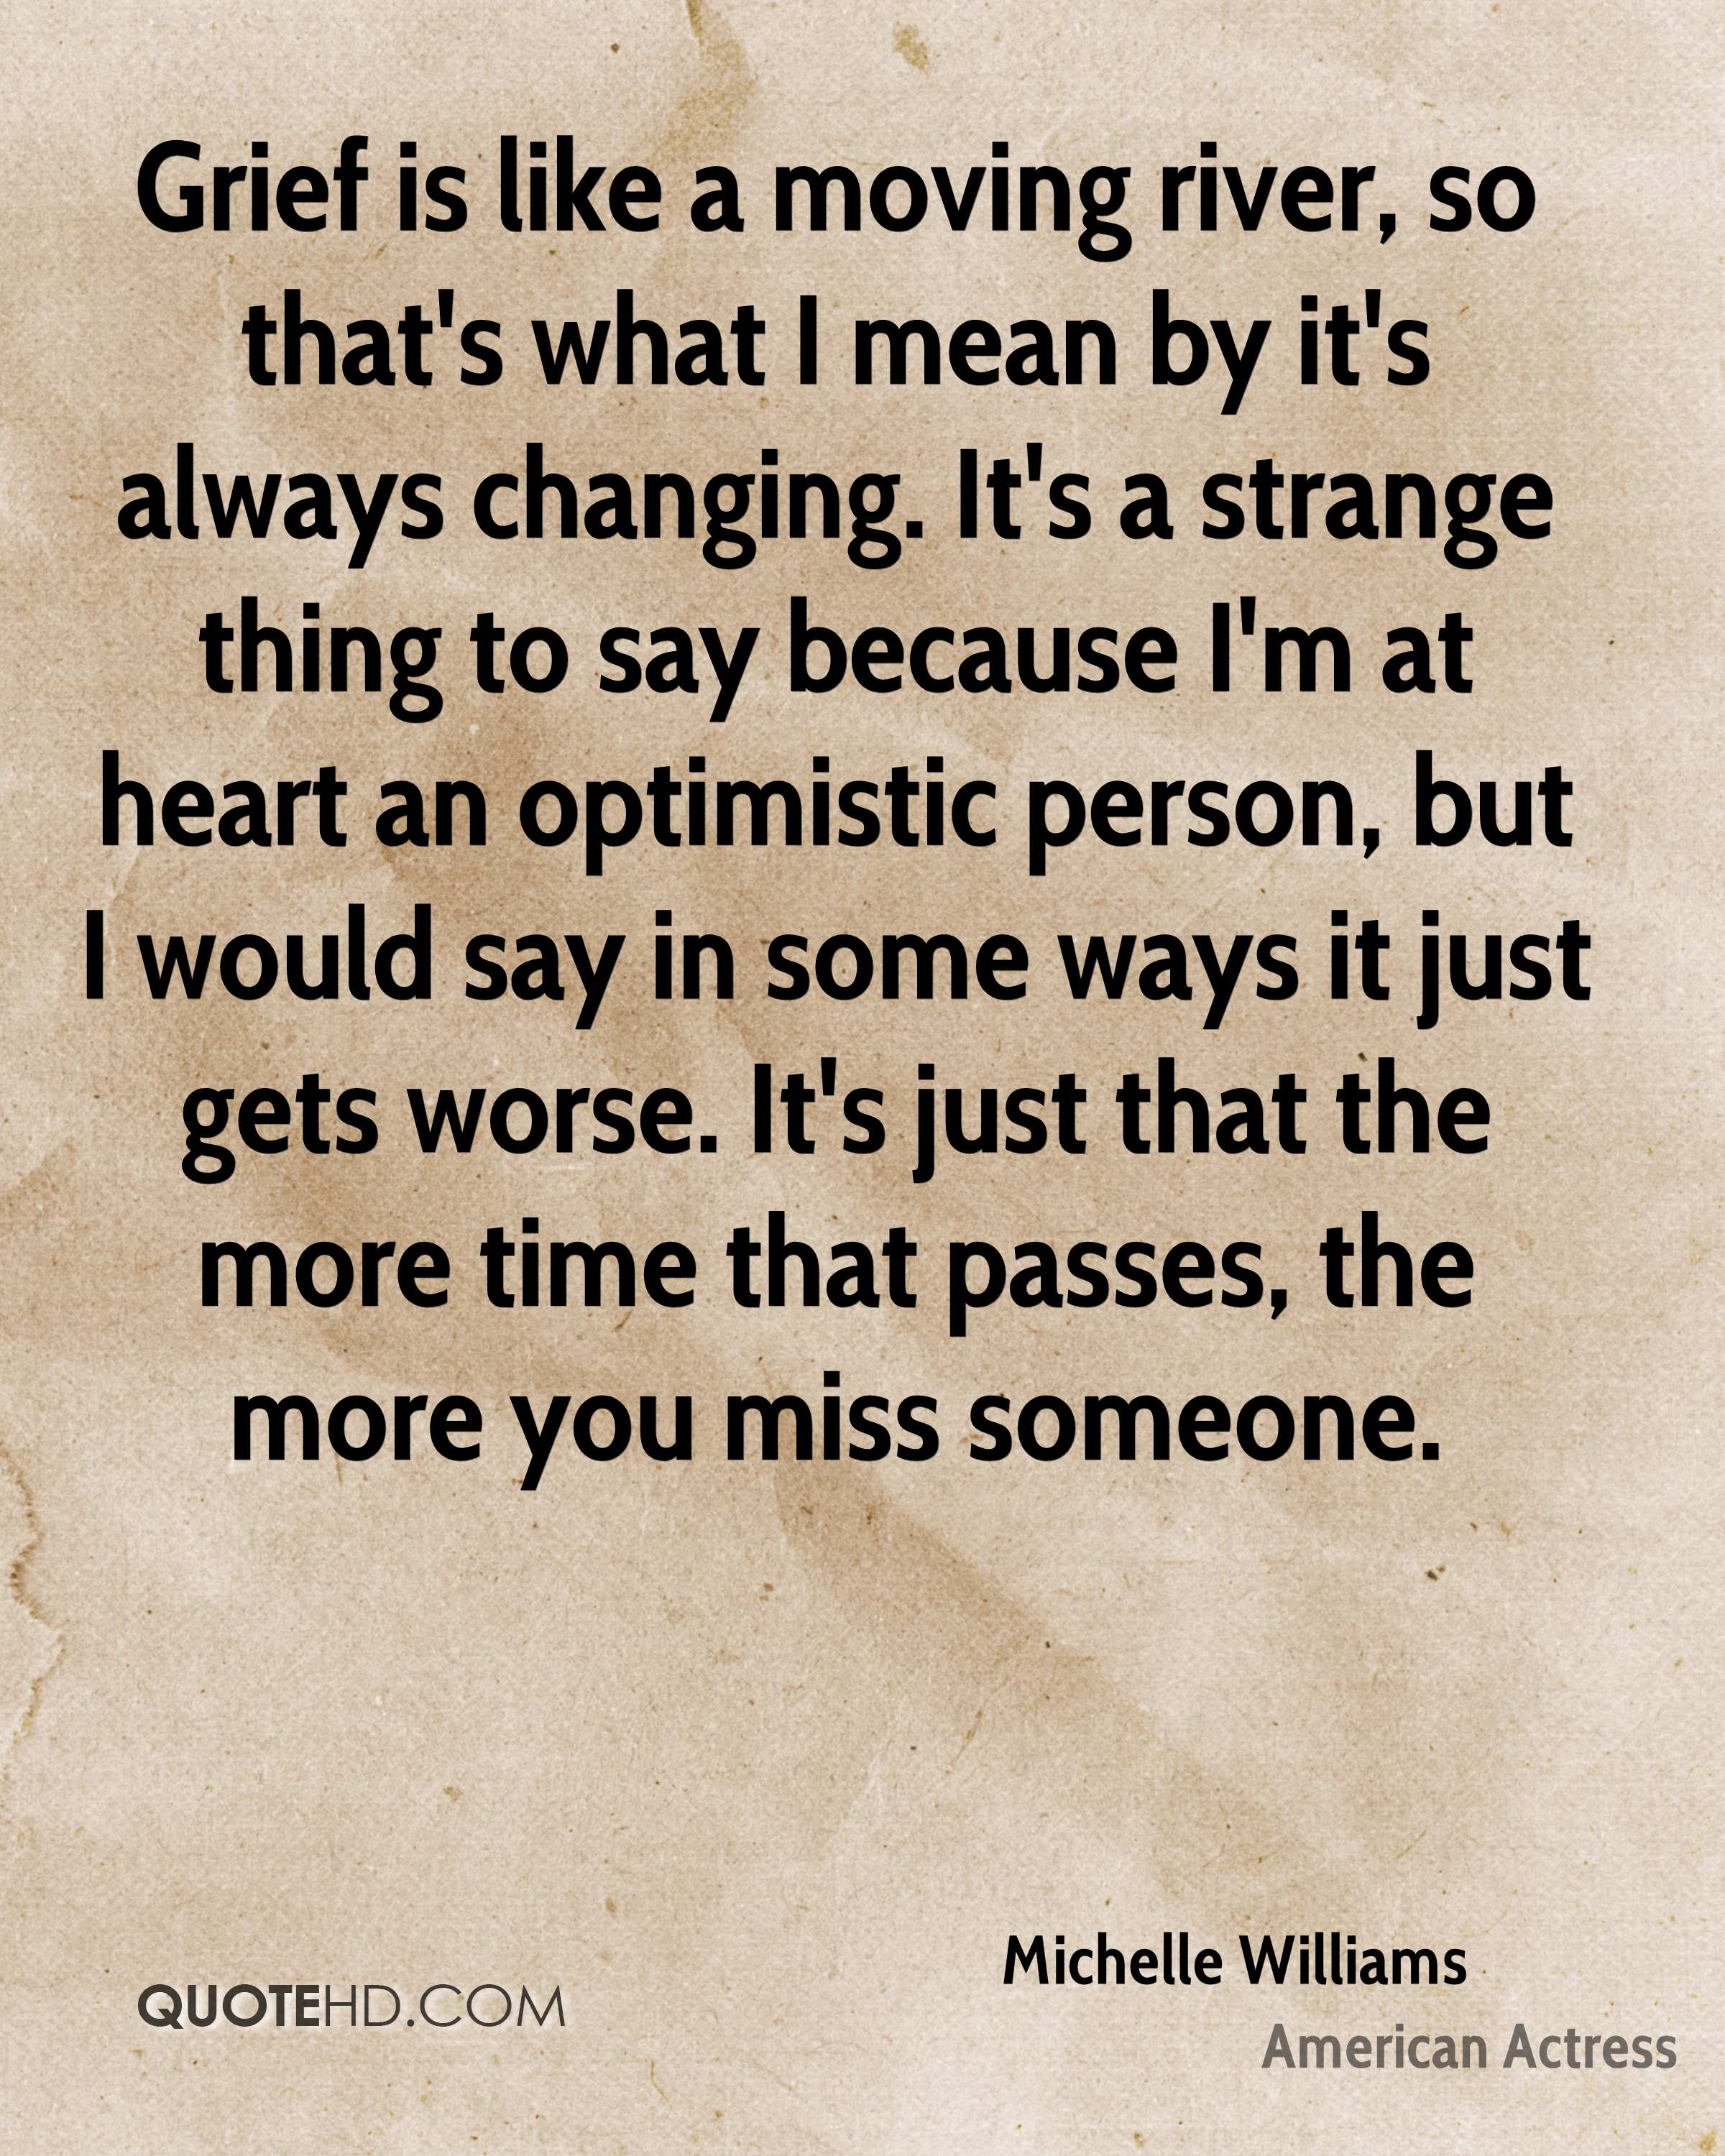 Grief is like a moving river, so that's what I mean by it's always changing. It's a strange thing to say because I'm at heart an optimistic person, but I would say in some ways it just gets worse. It's just that the more time that passes, the more you miss someone.